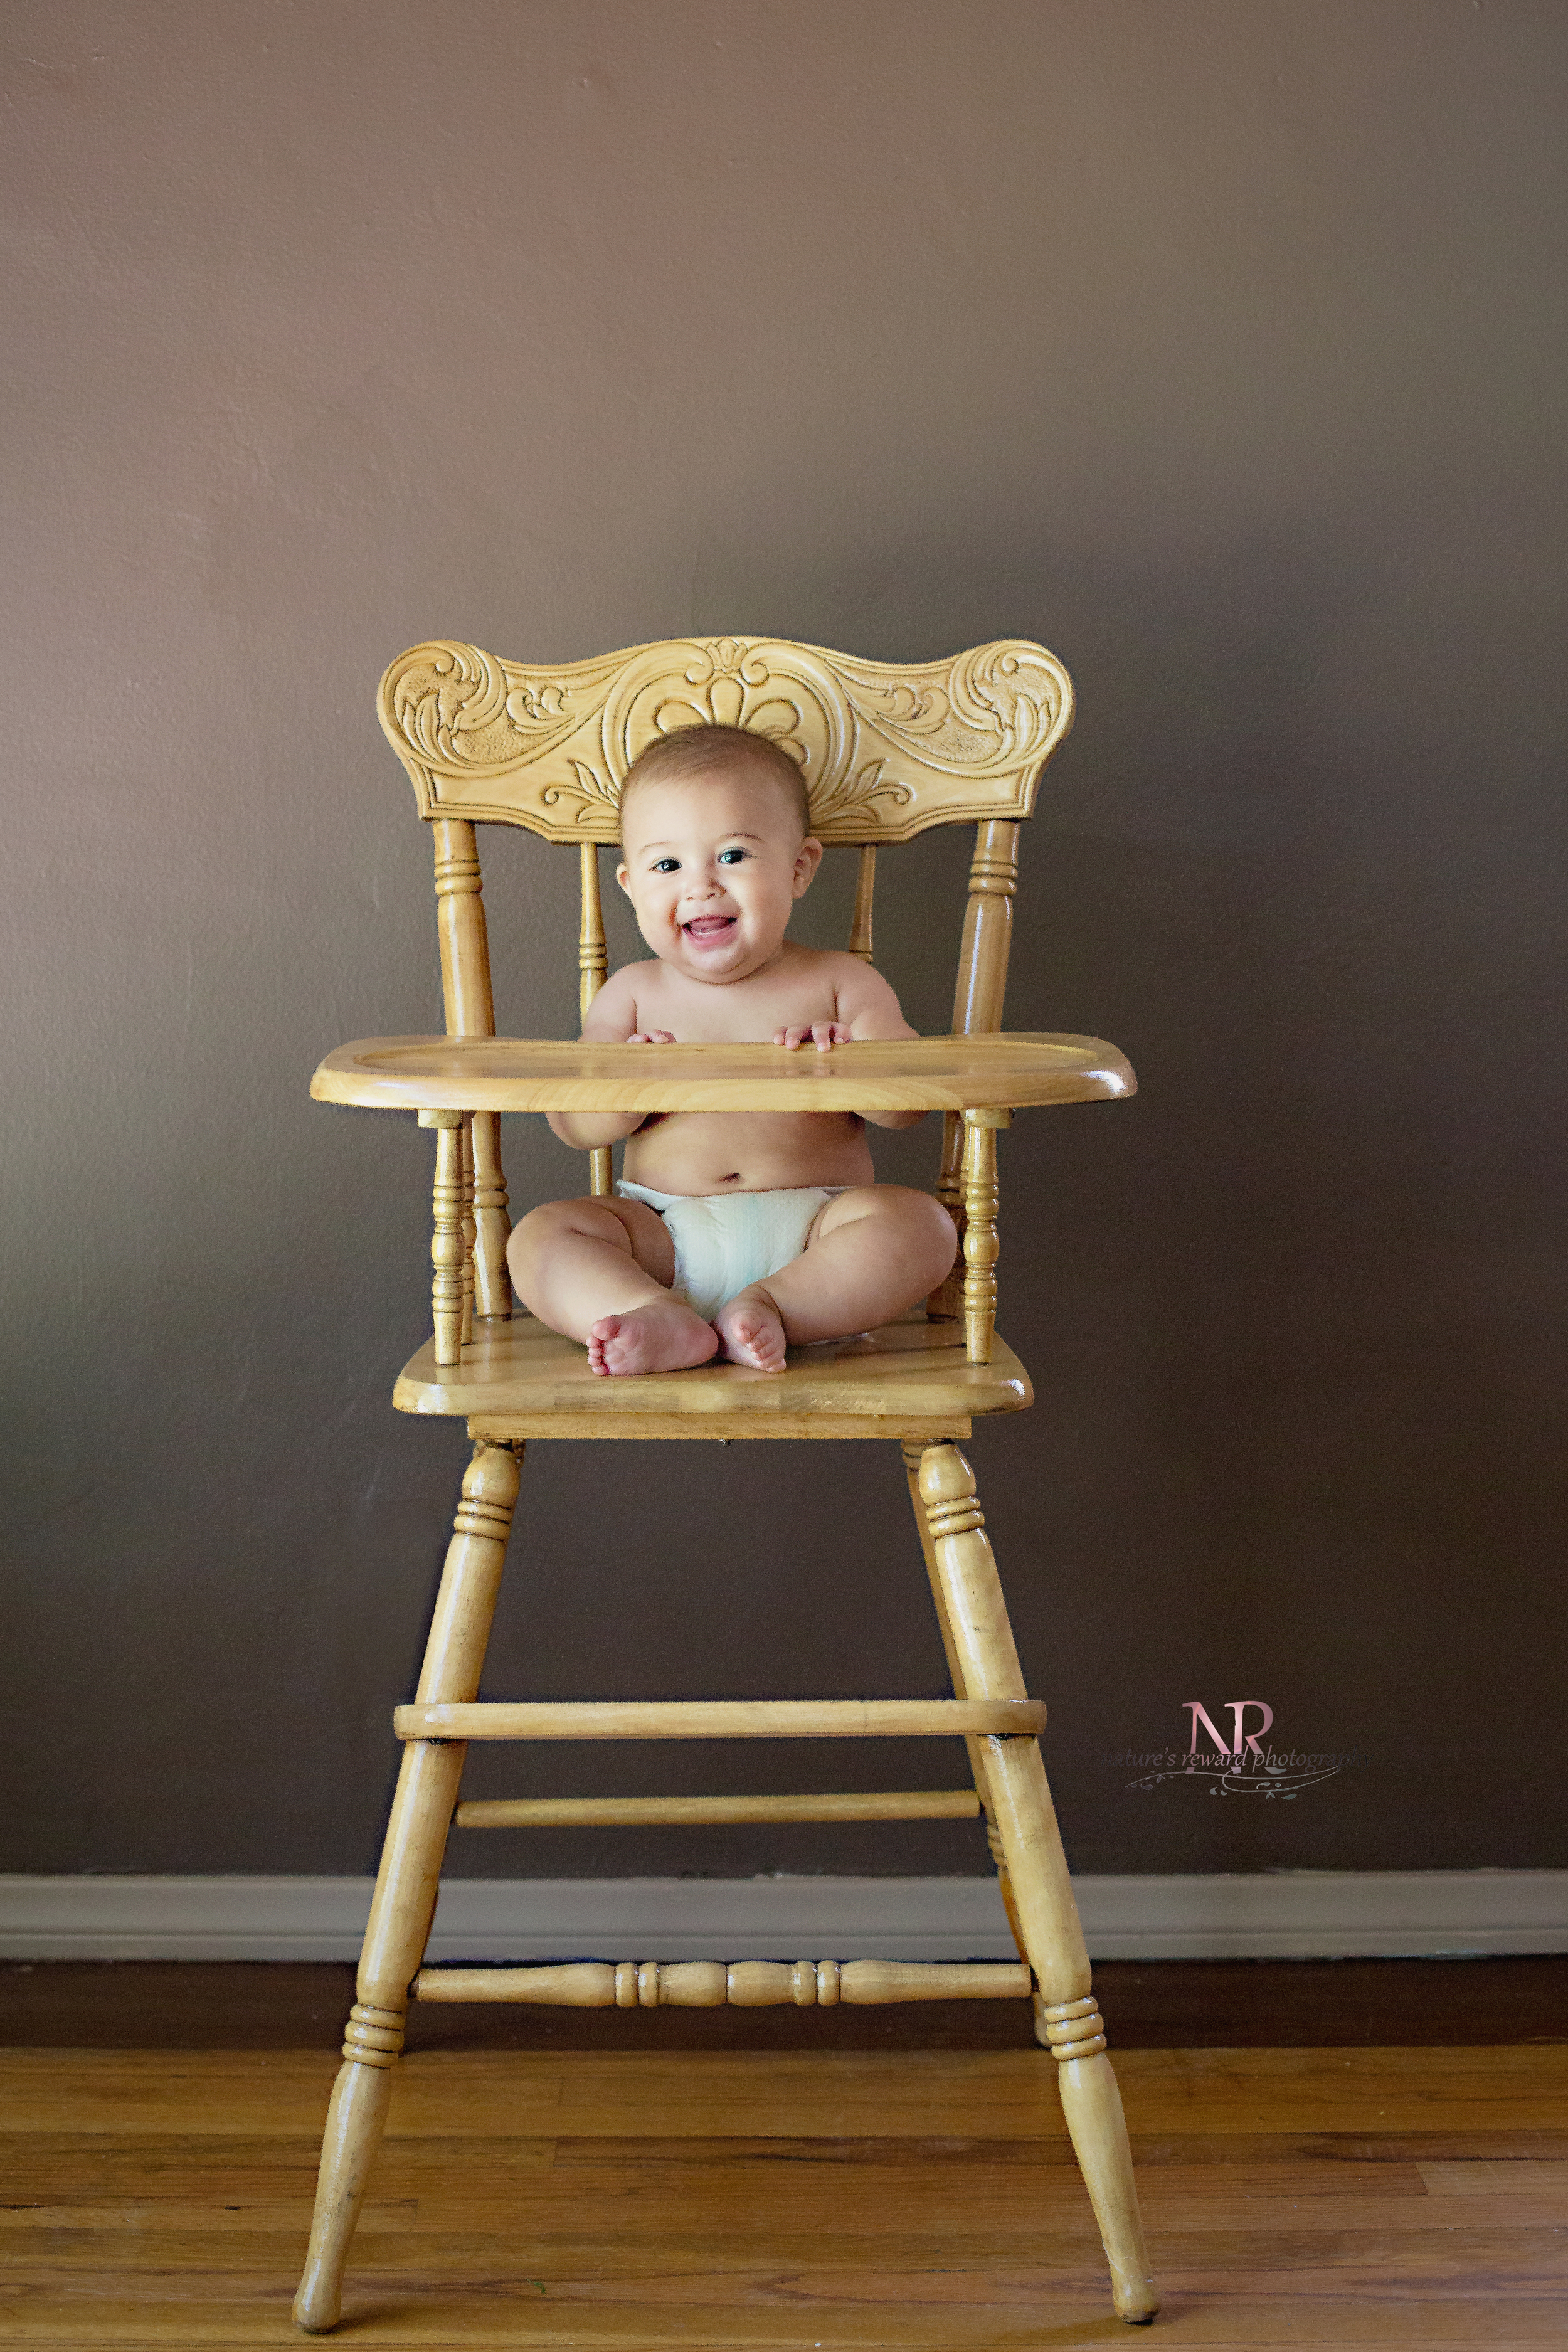 Into the high chair he went! A little small for it, and he would slowly start to lean- But he looks stinking adorable,